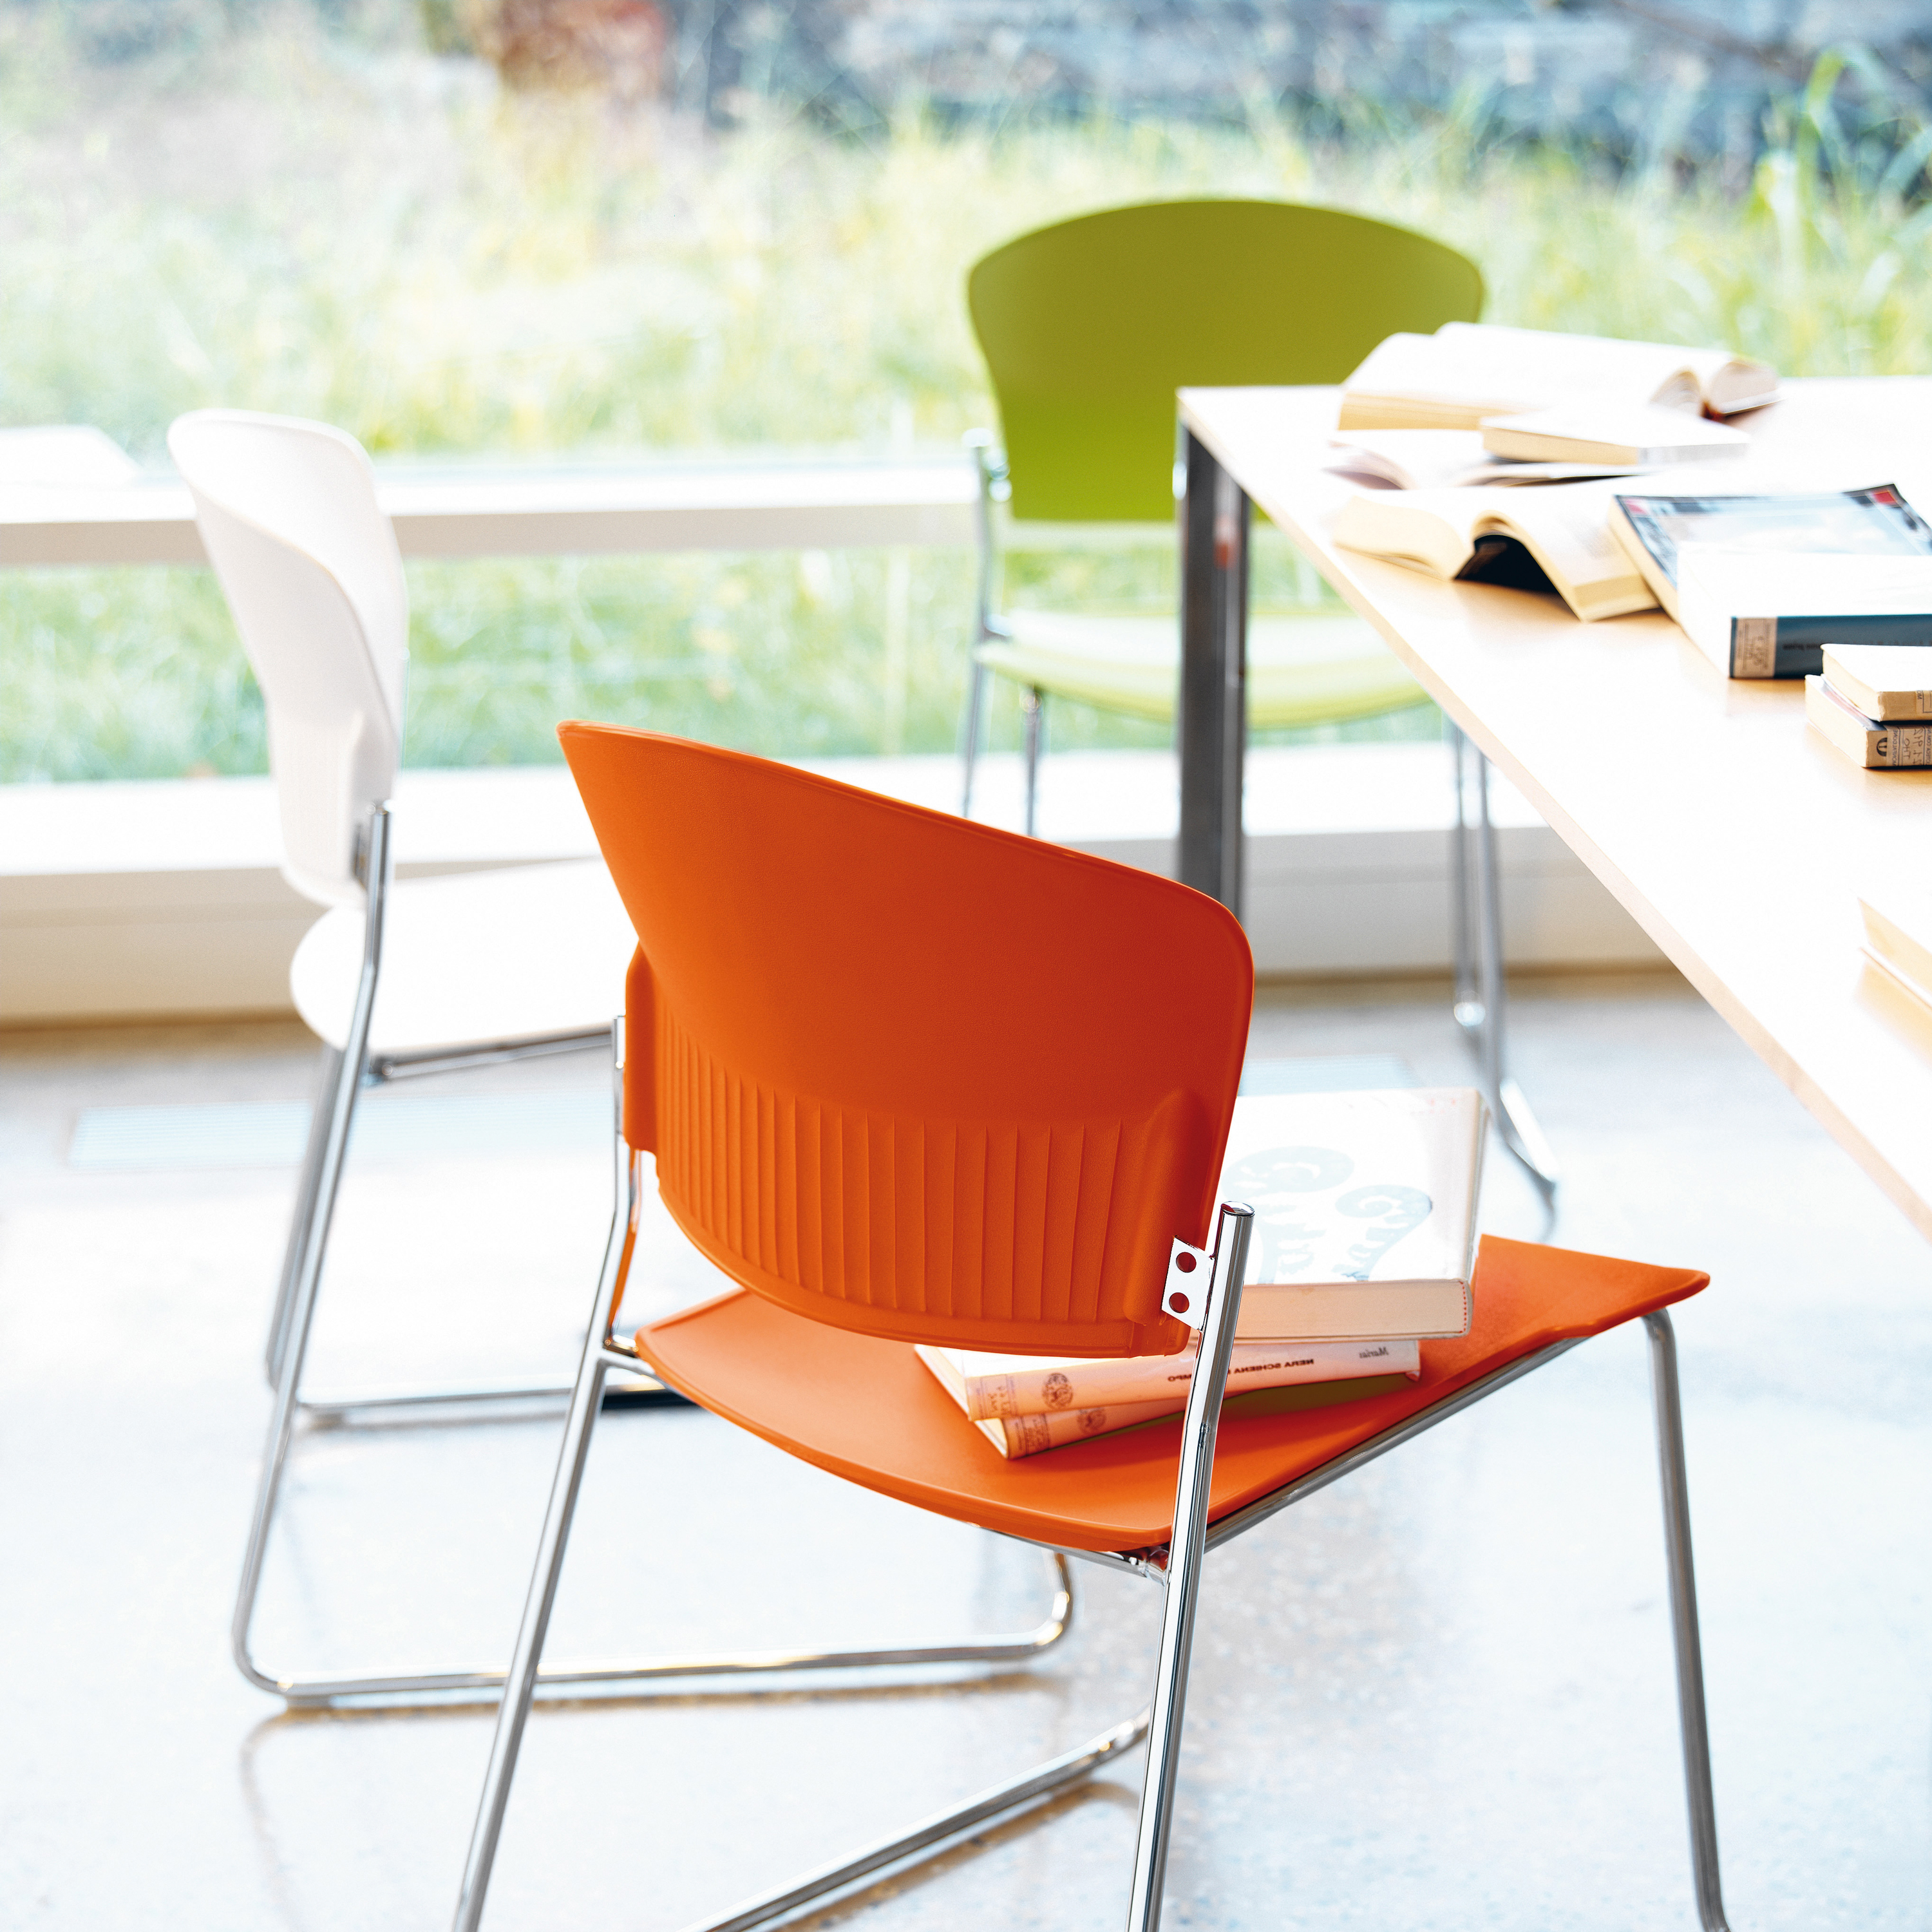 02S_Estel_Comfort&Relax_Office-chair&contract-conference_Cameo